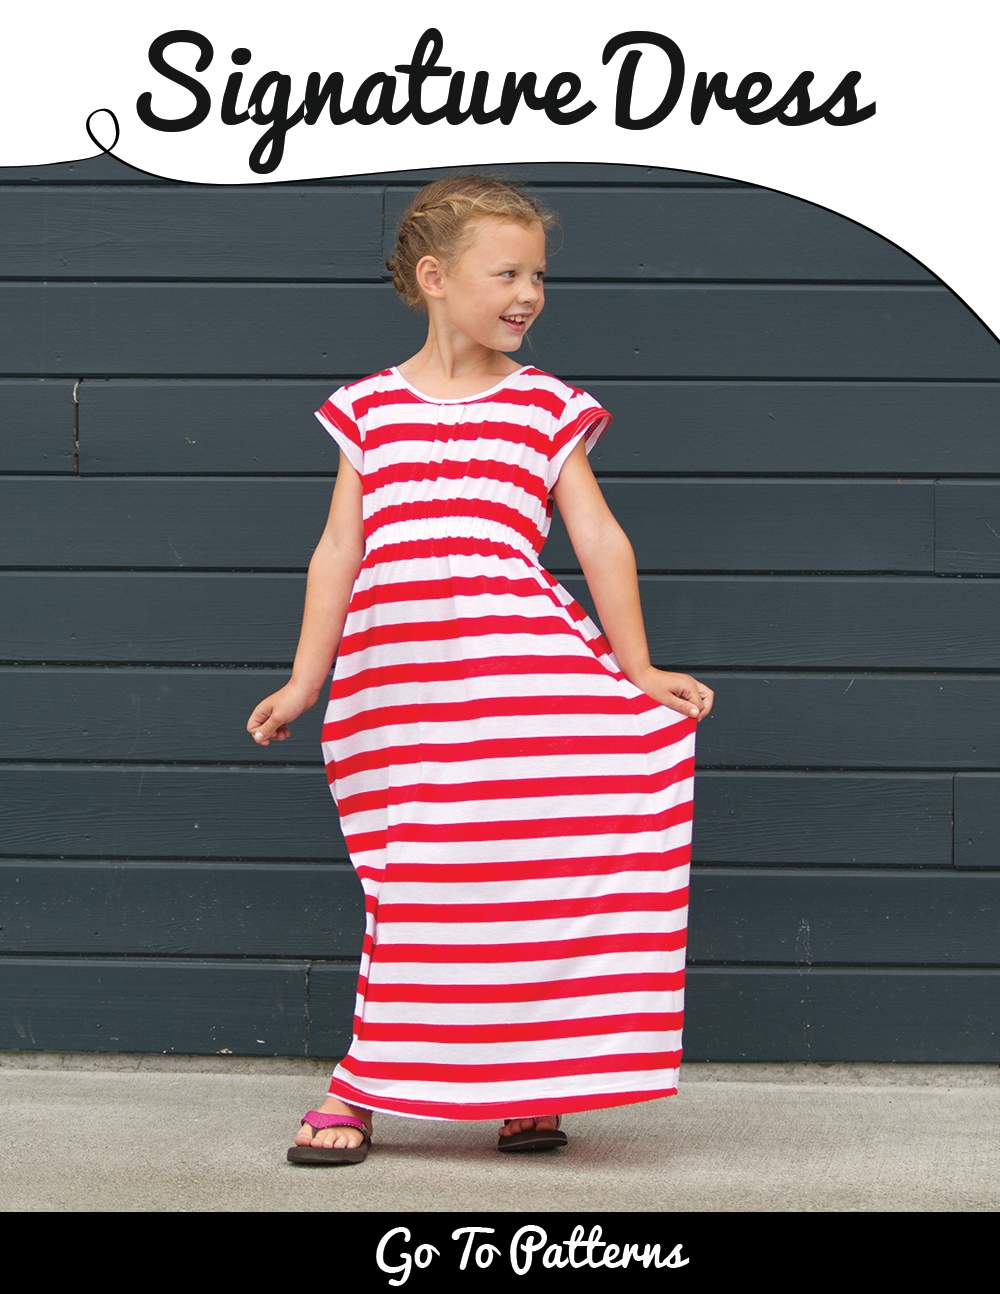 Go To Signature Dress pattern sizes 12m-12yrs